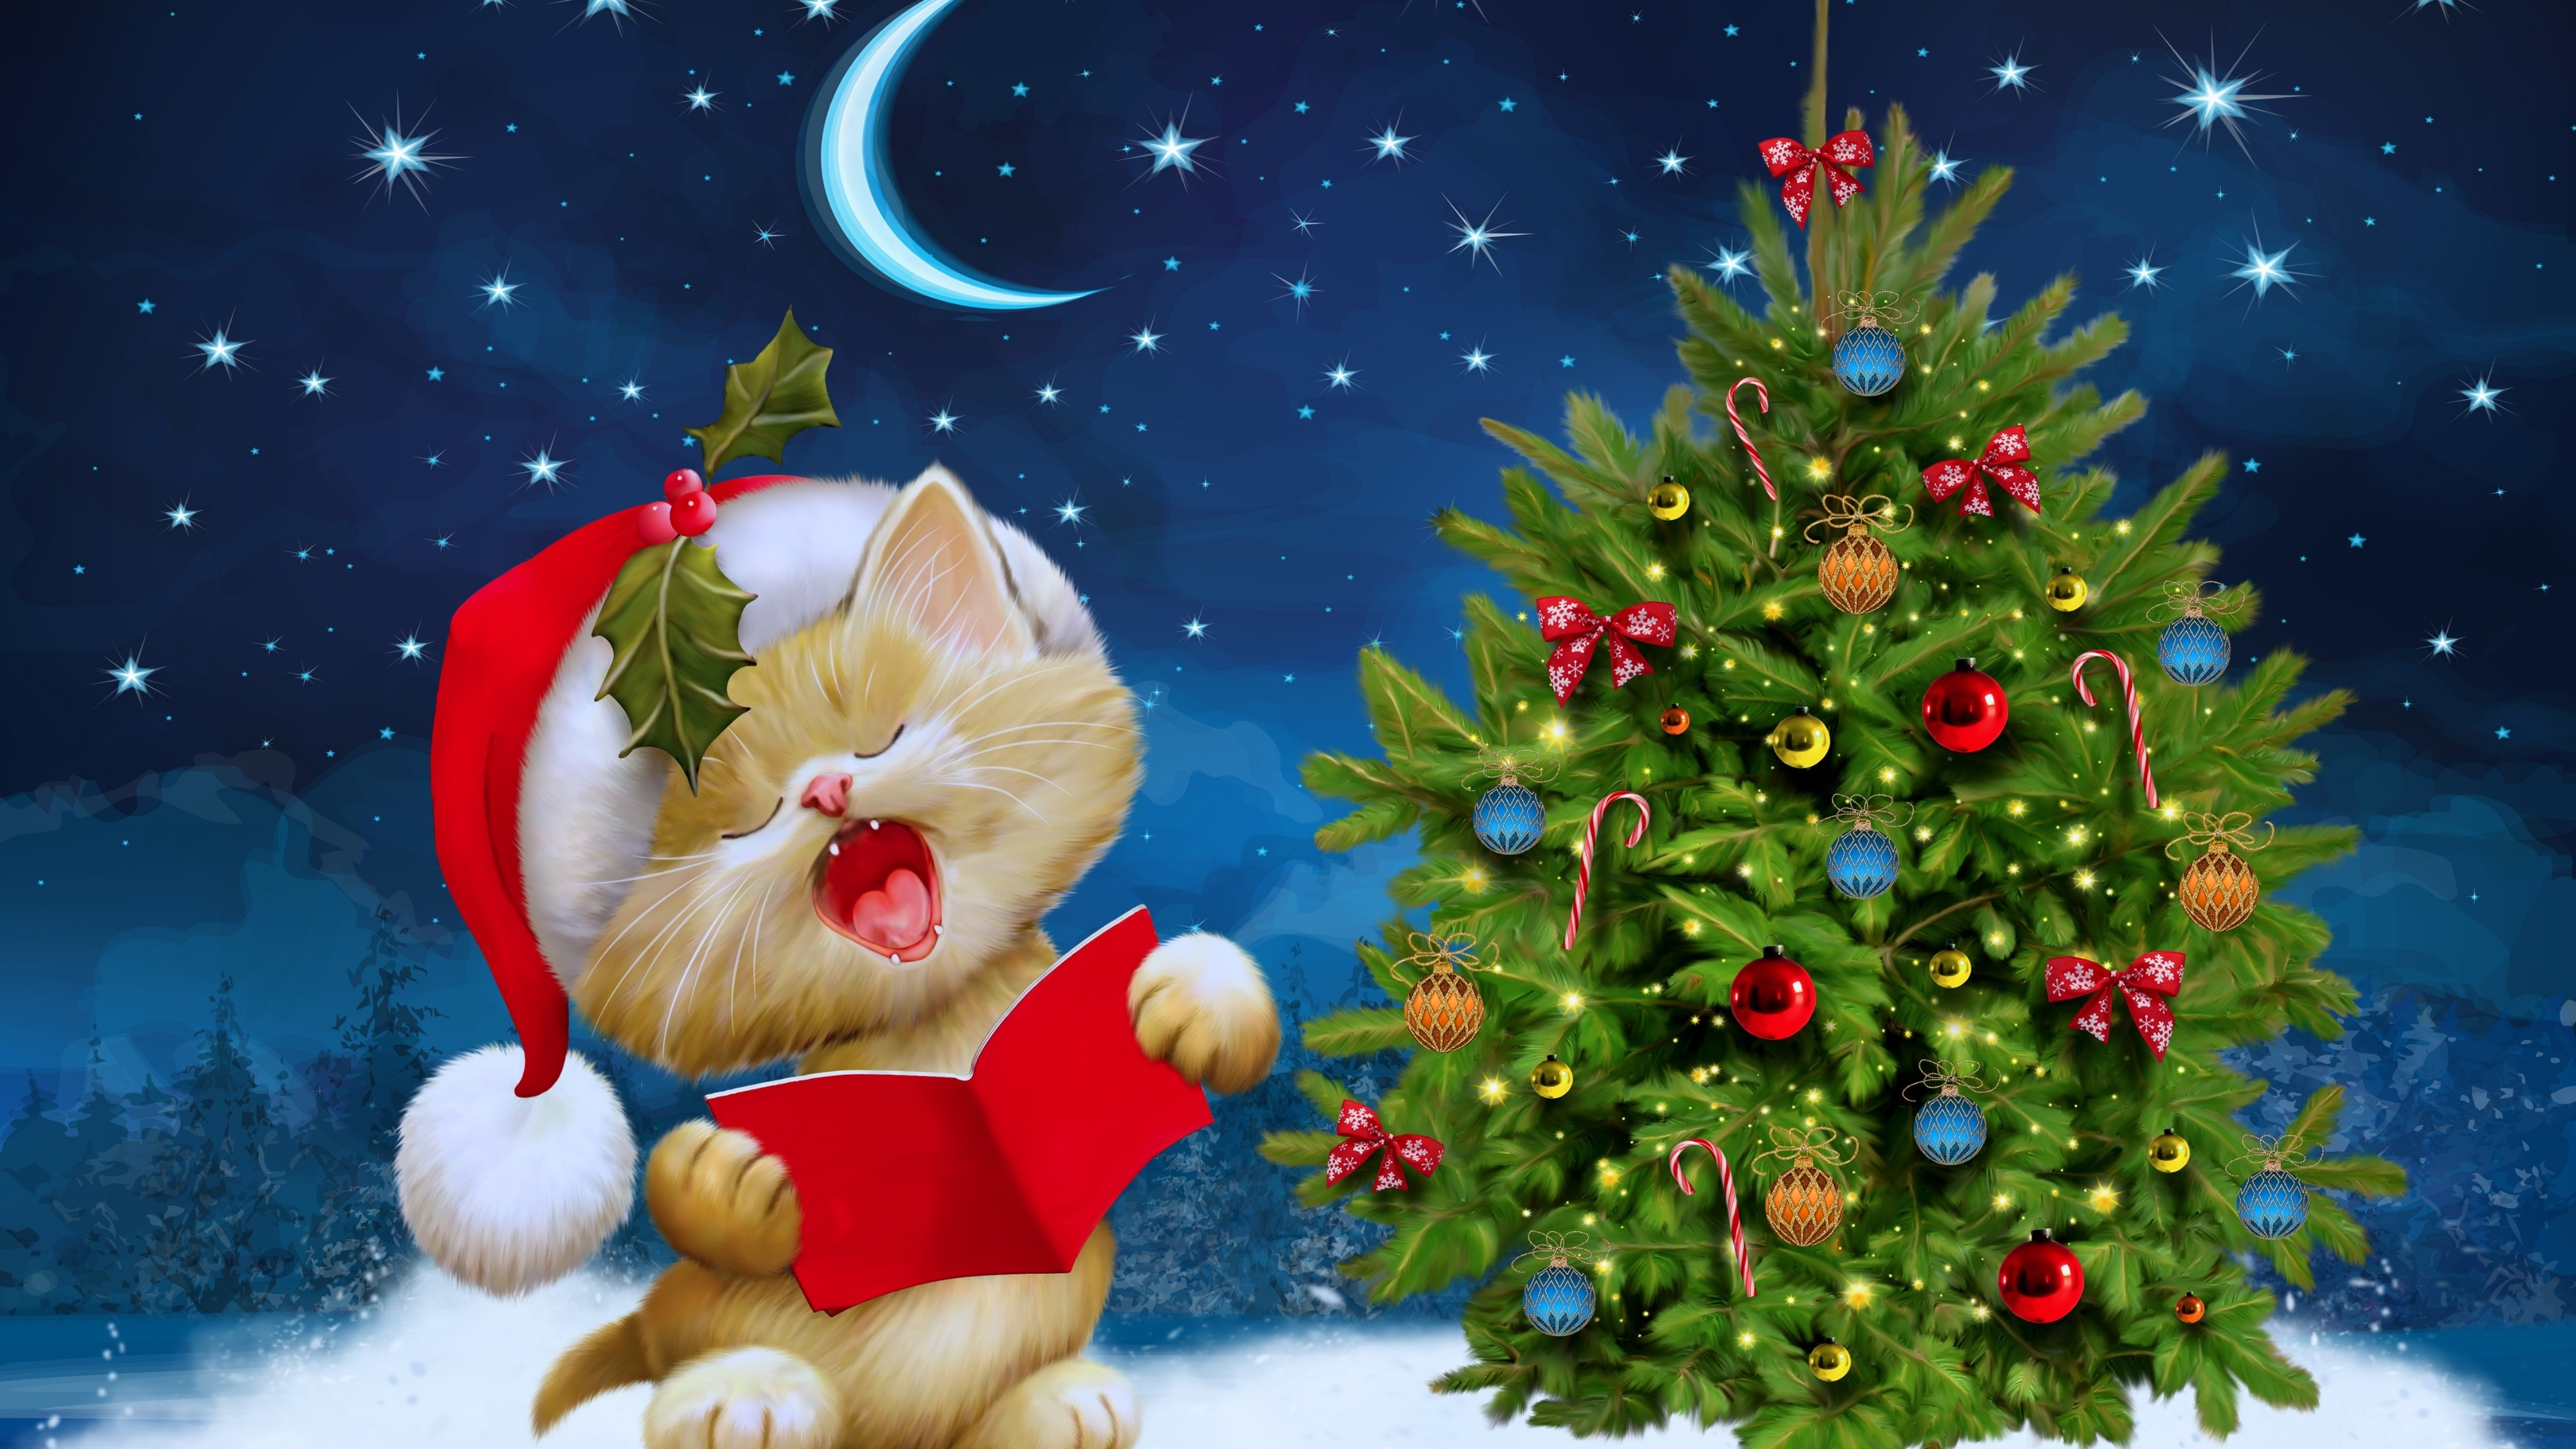 1920x1200 christmas background images christmas desktop wallpaper christmas tree wallpaper free christmas wallpaper backgrounds merry christmas wallpaper - Free Christmas Desktop Backgrounds